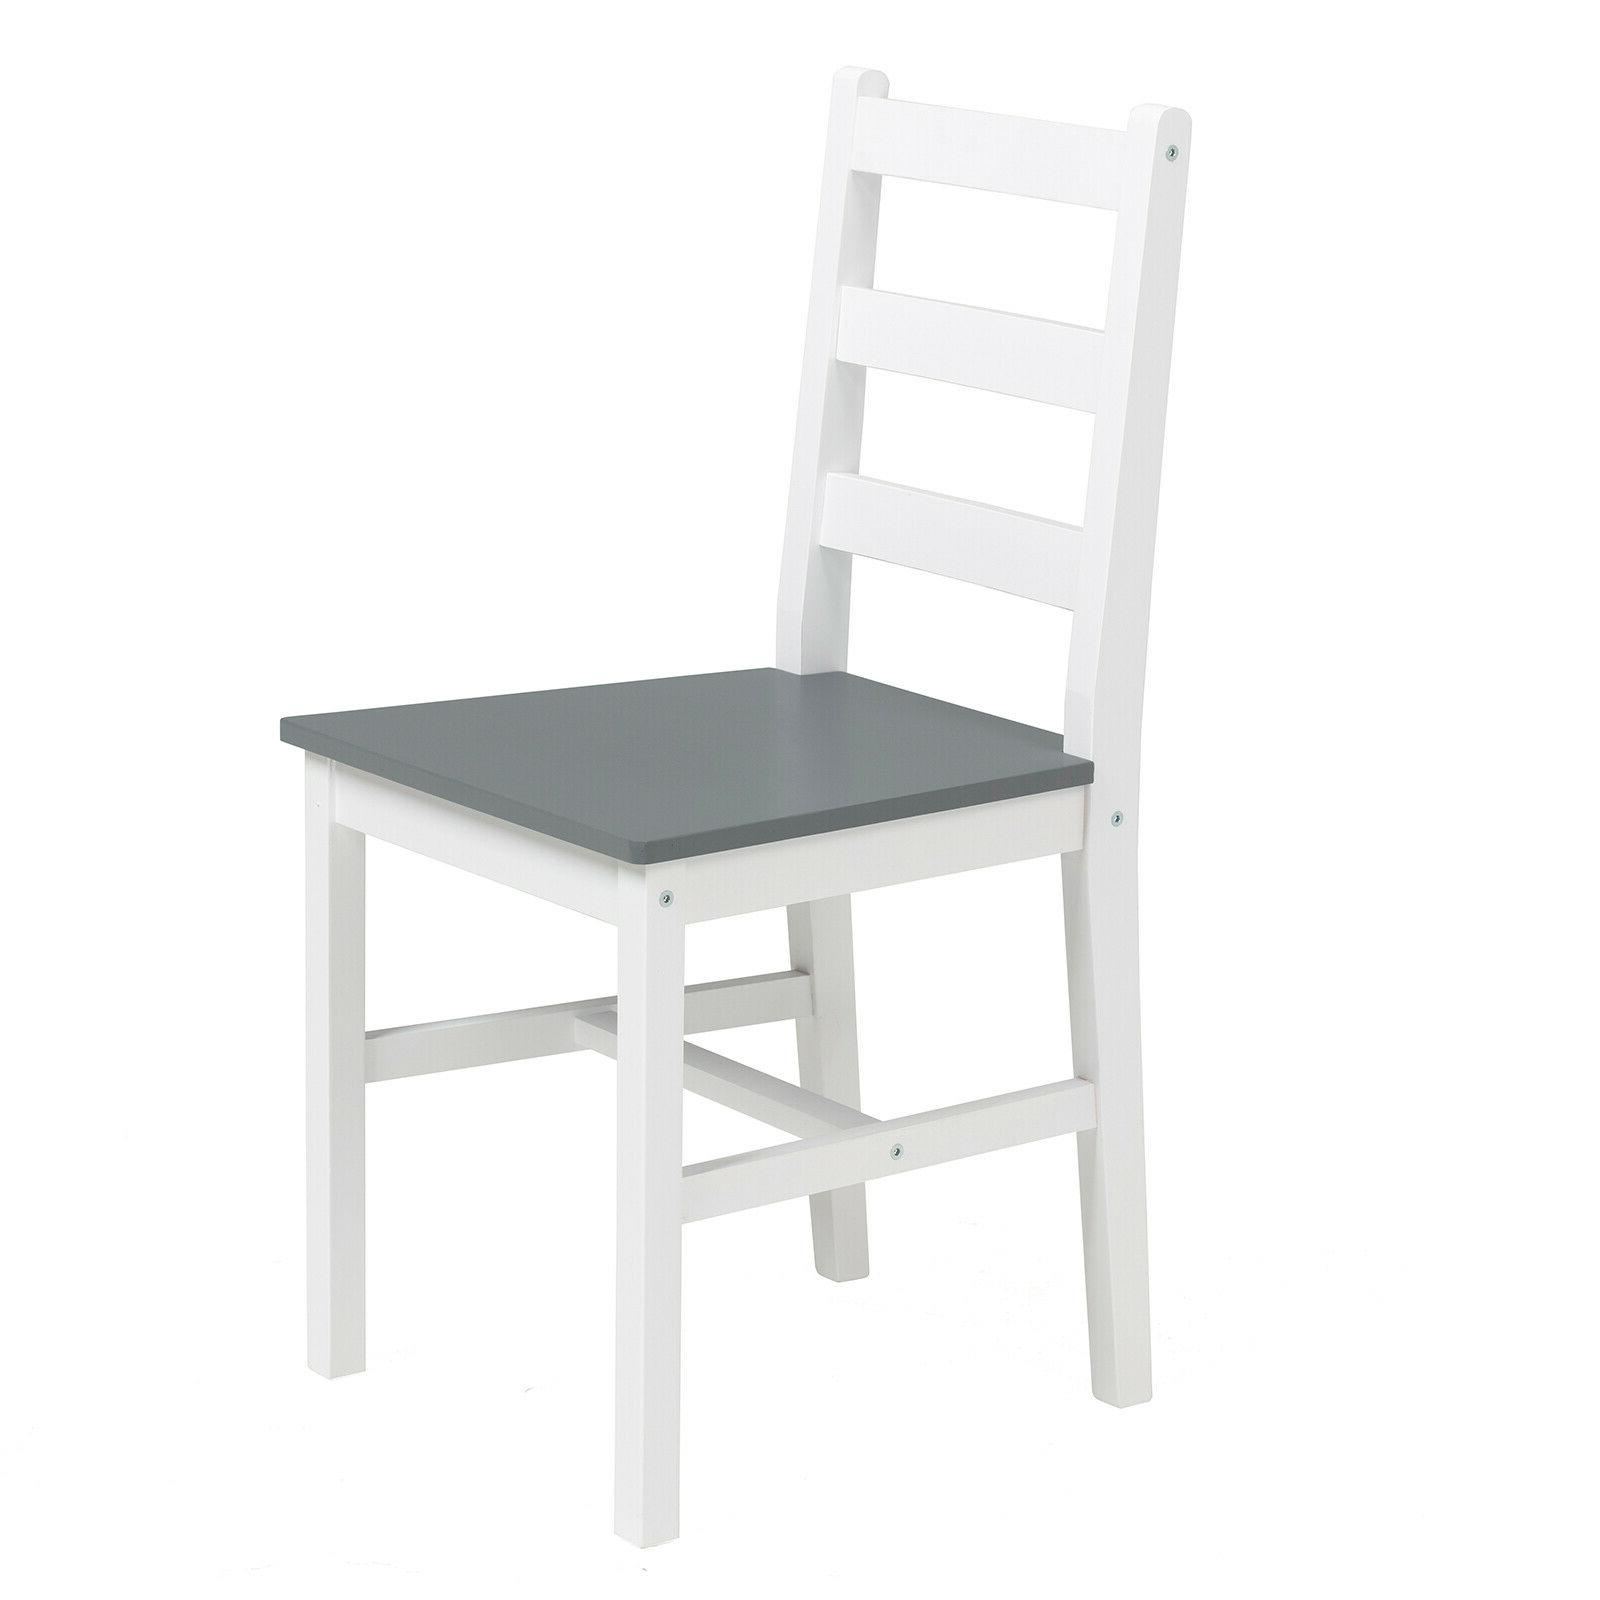 3PCS Table 2 Chairs Room Furniture Grey